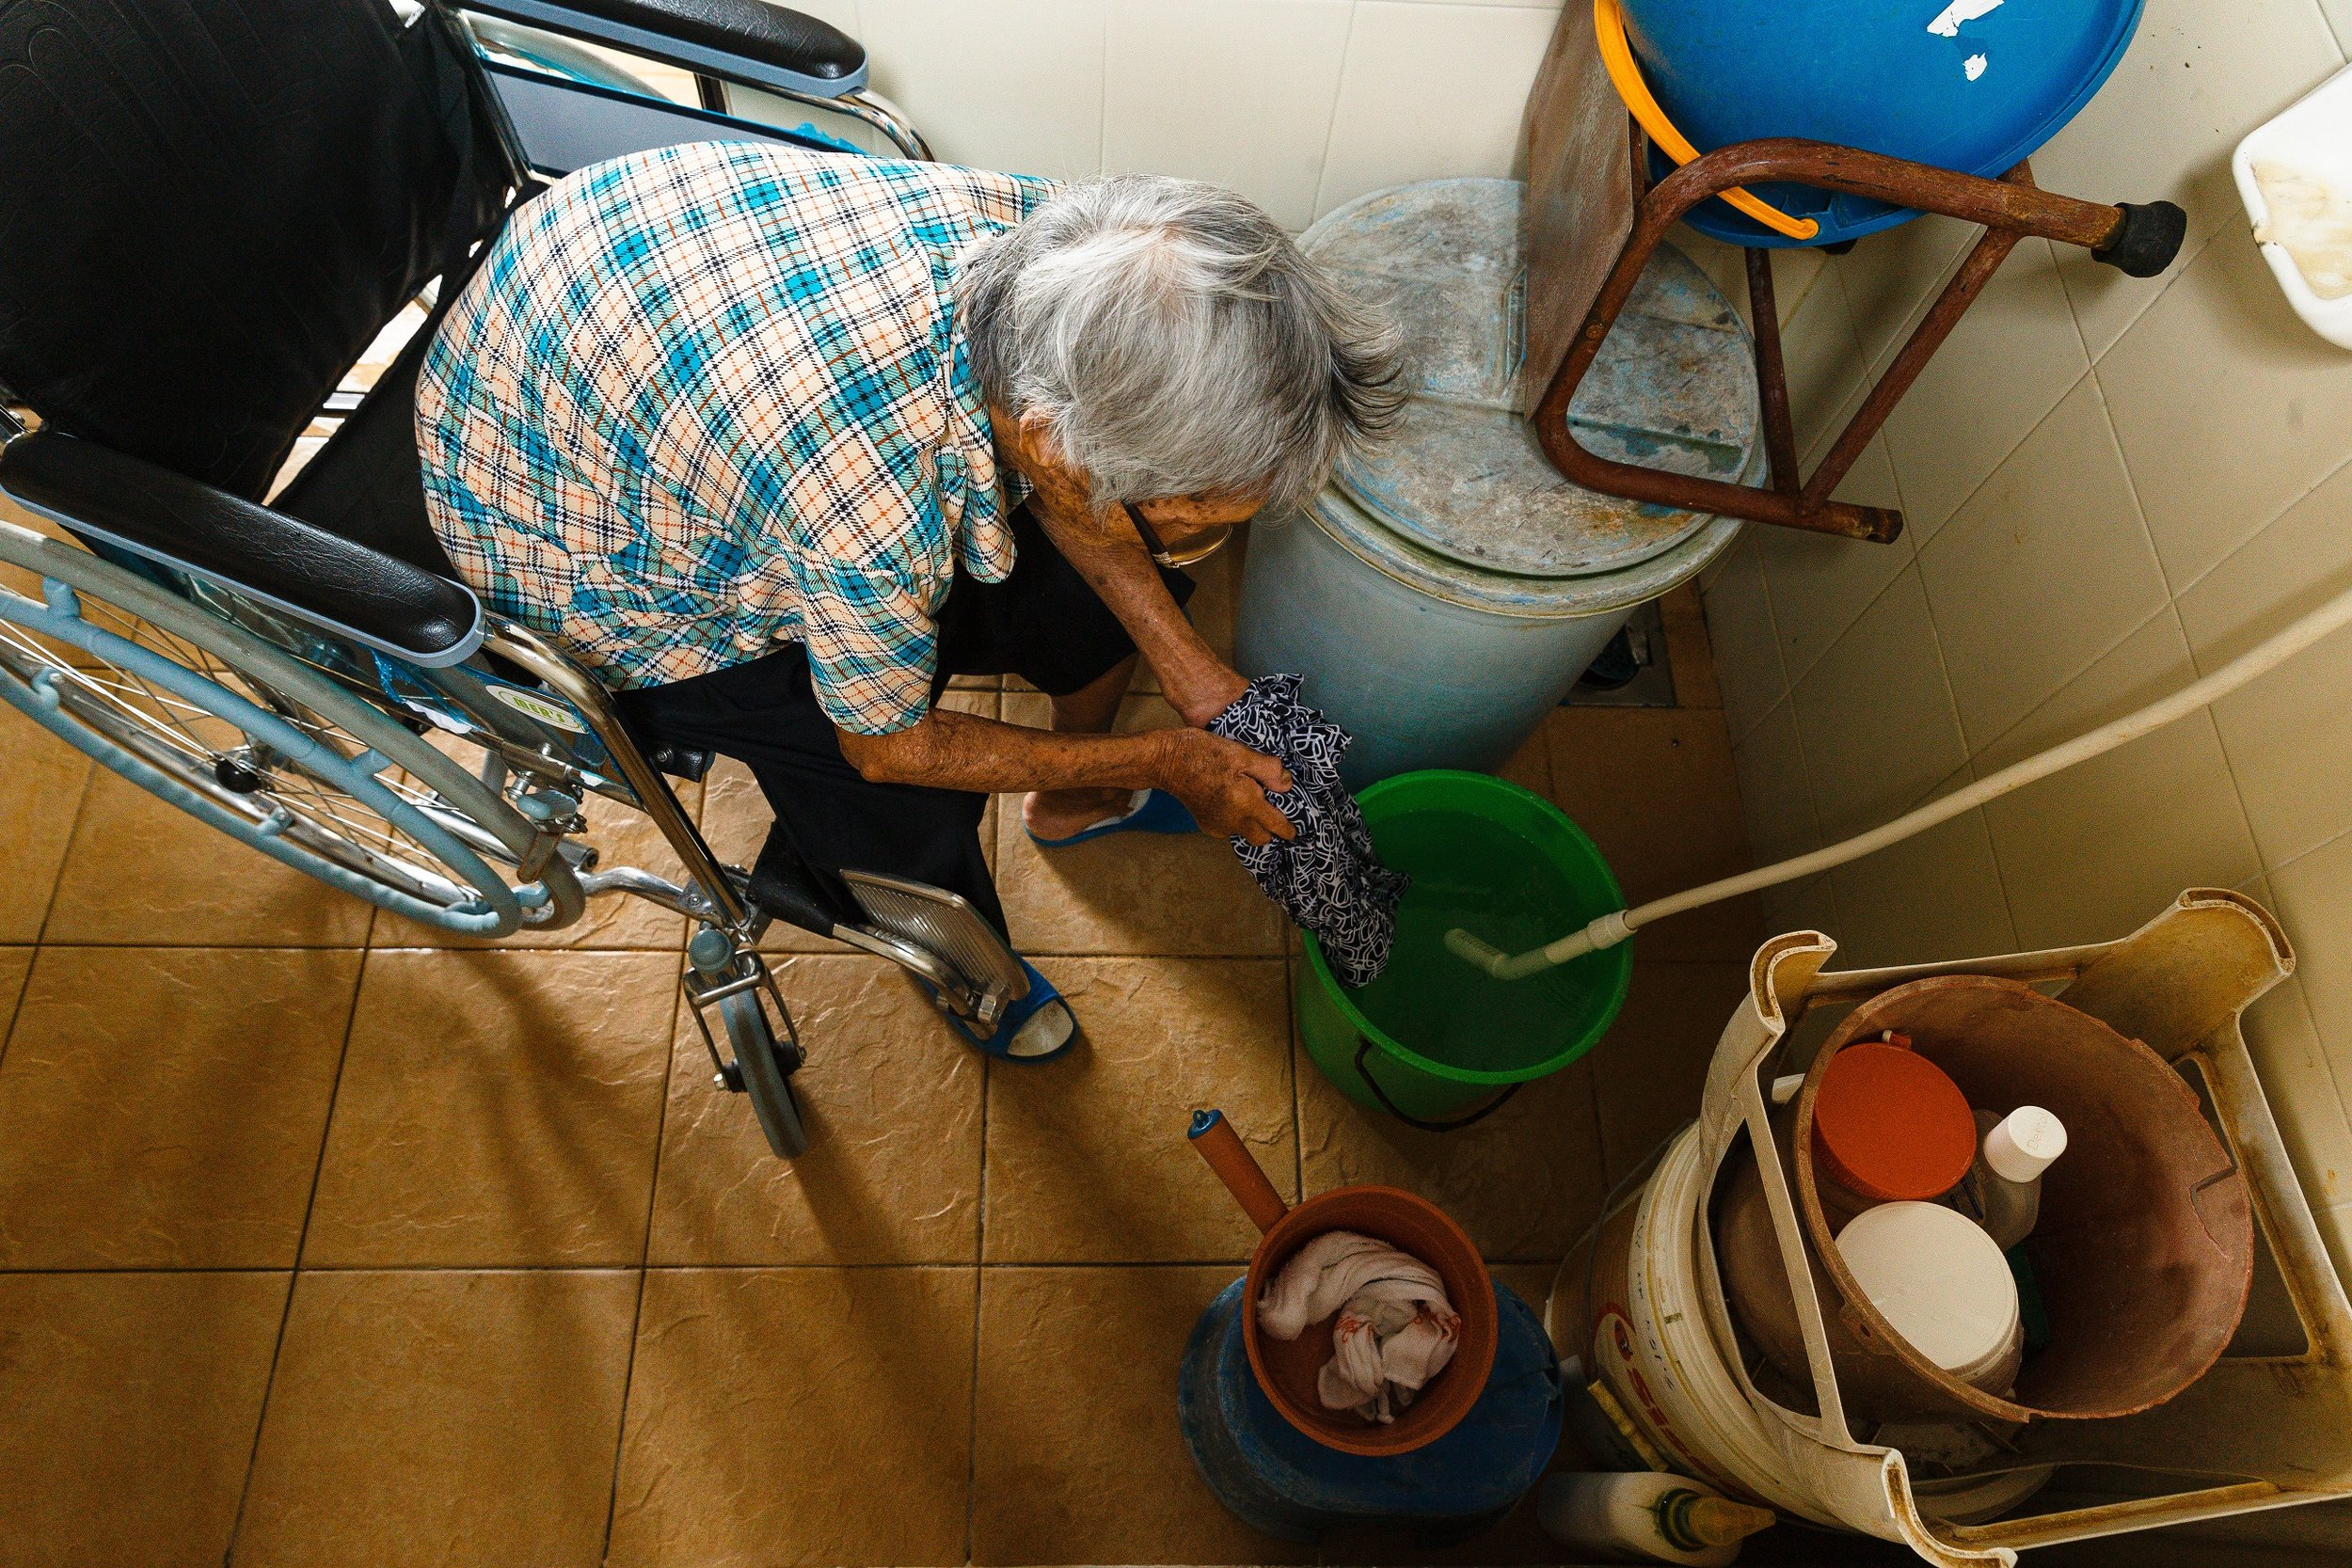 86 years old and rely on a wheelchair to move around, but she insists on washing her own clothes daily.(photo by Mango Loke)